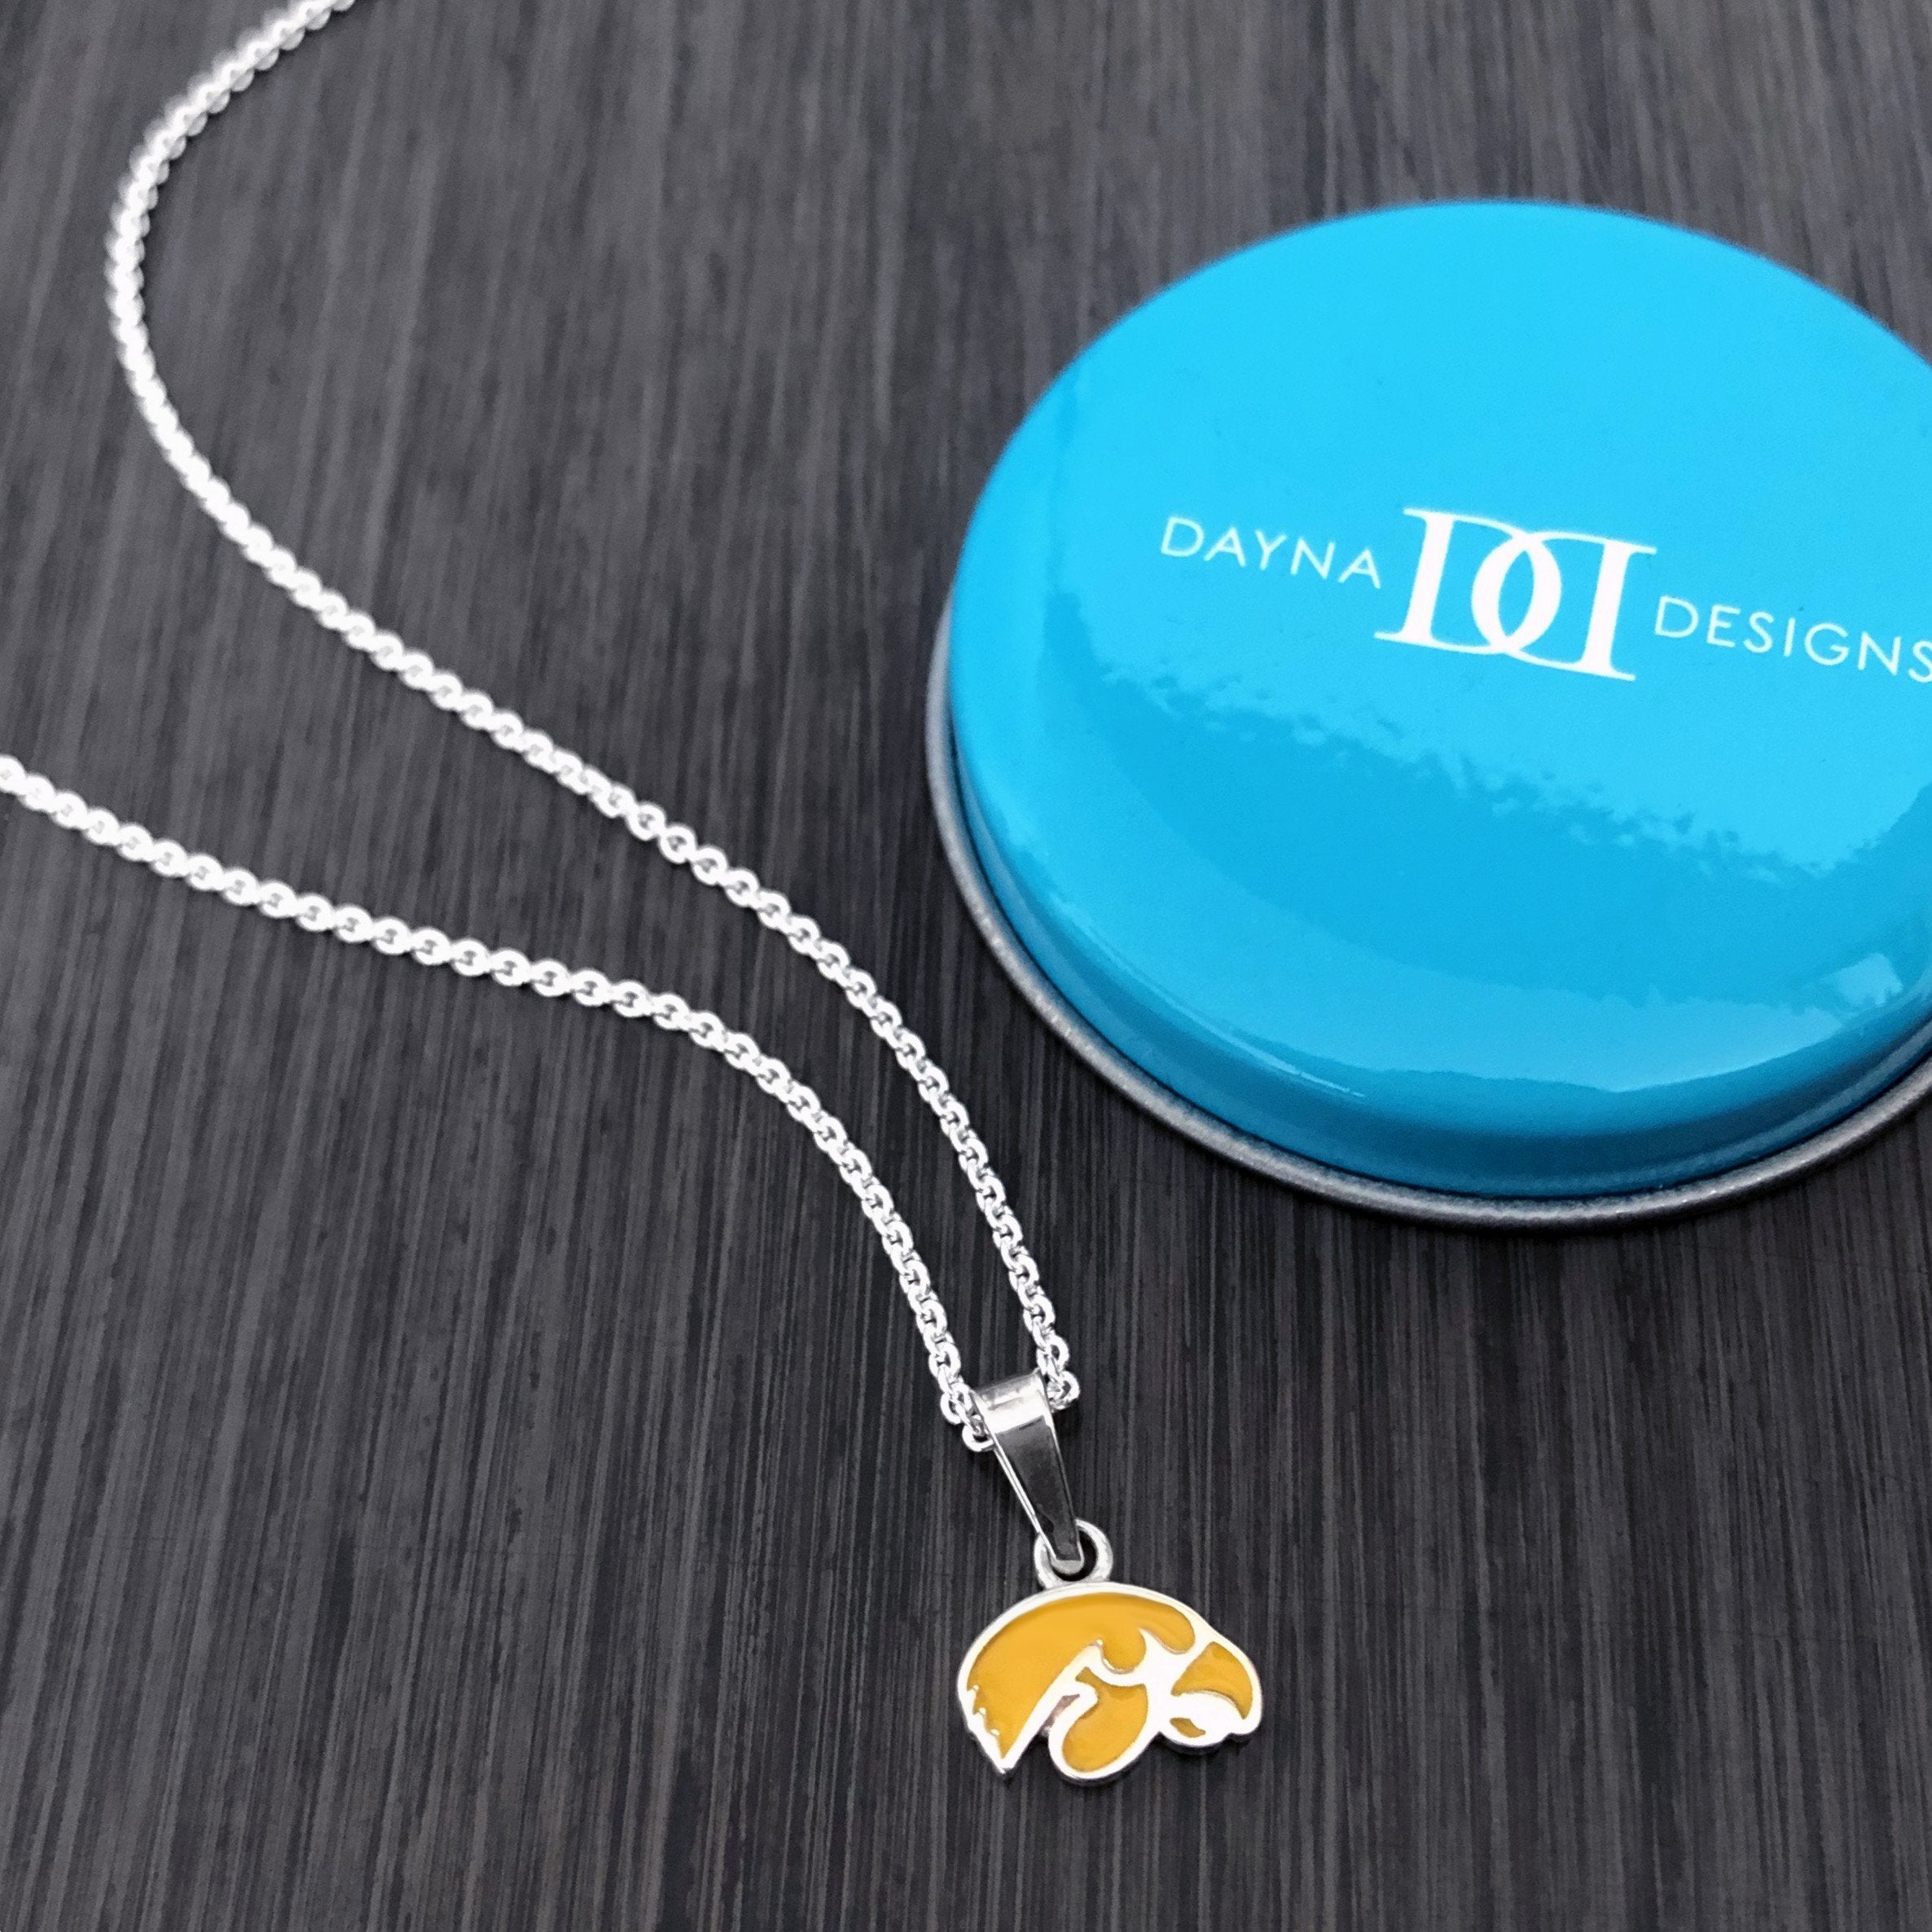 University of Iowa Pendant Necklace - Enamel